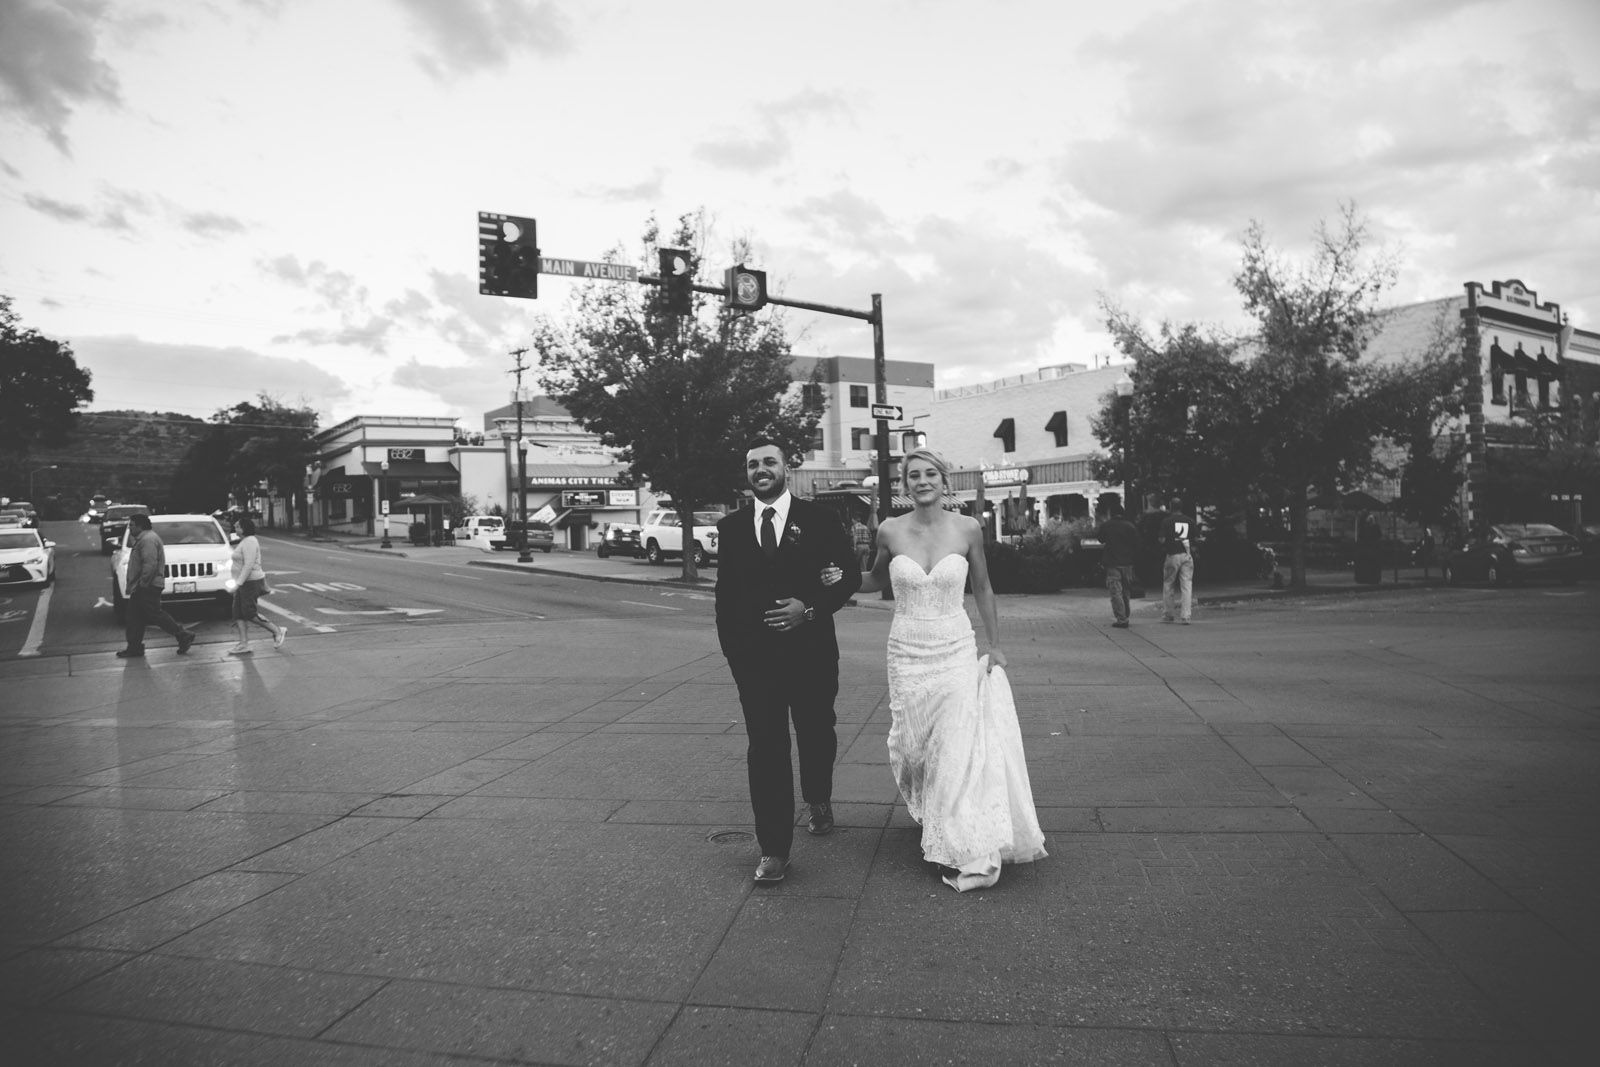 180-beautiful-bride-and-groom-photojournalist-portraits-at-elopement-wedding-in-durango-colorado-downtown